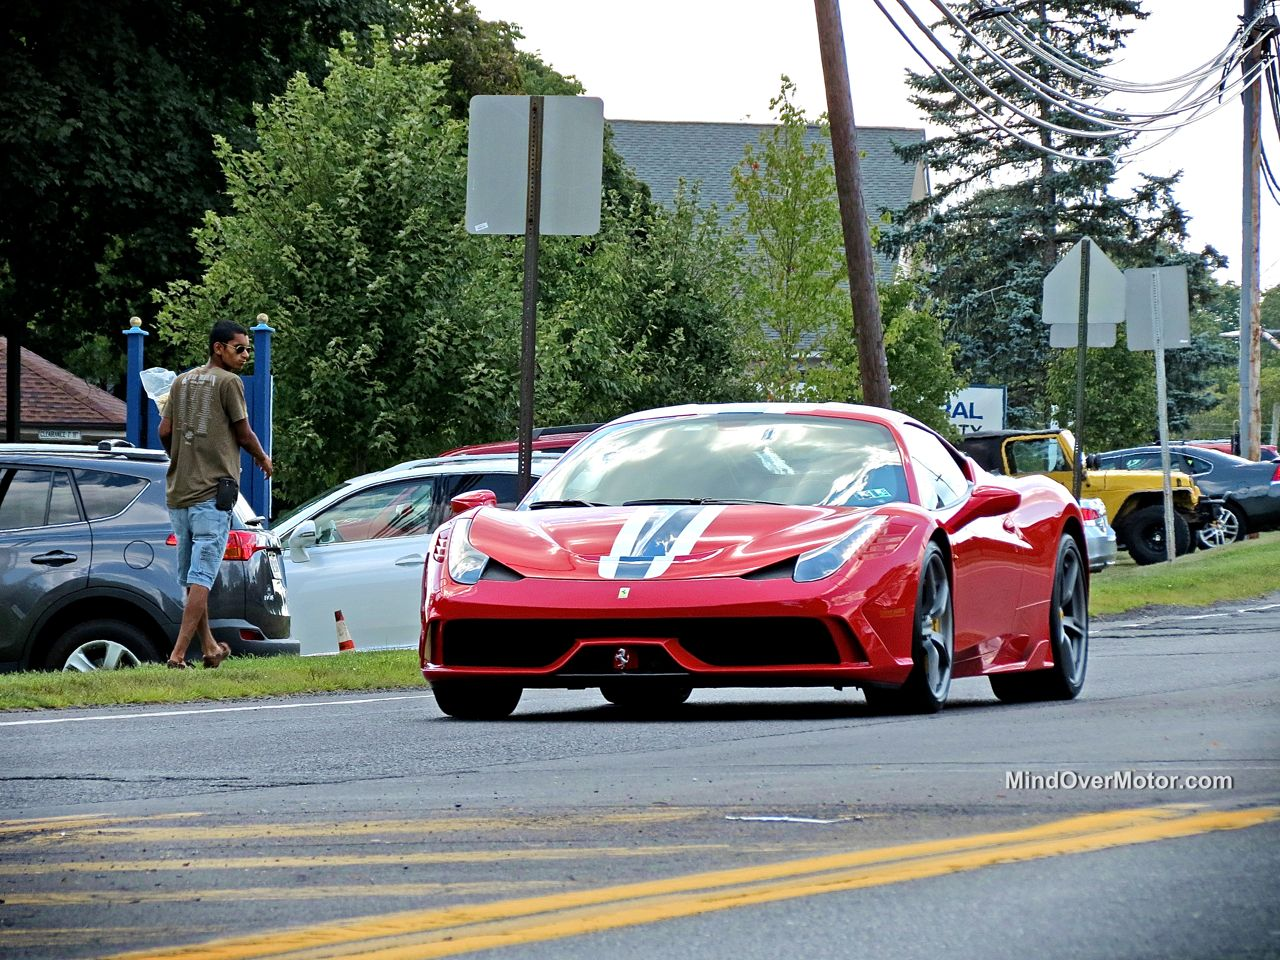 Ferrari 458 Speciale in New Hope, PA